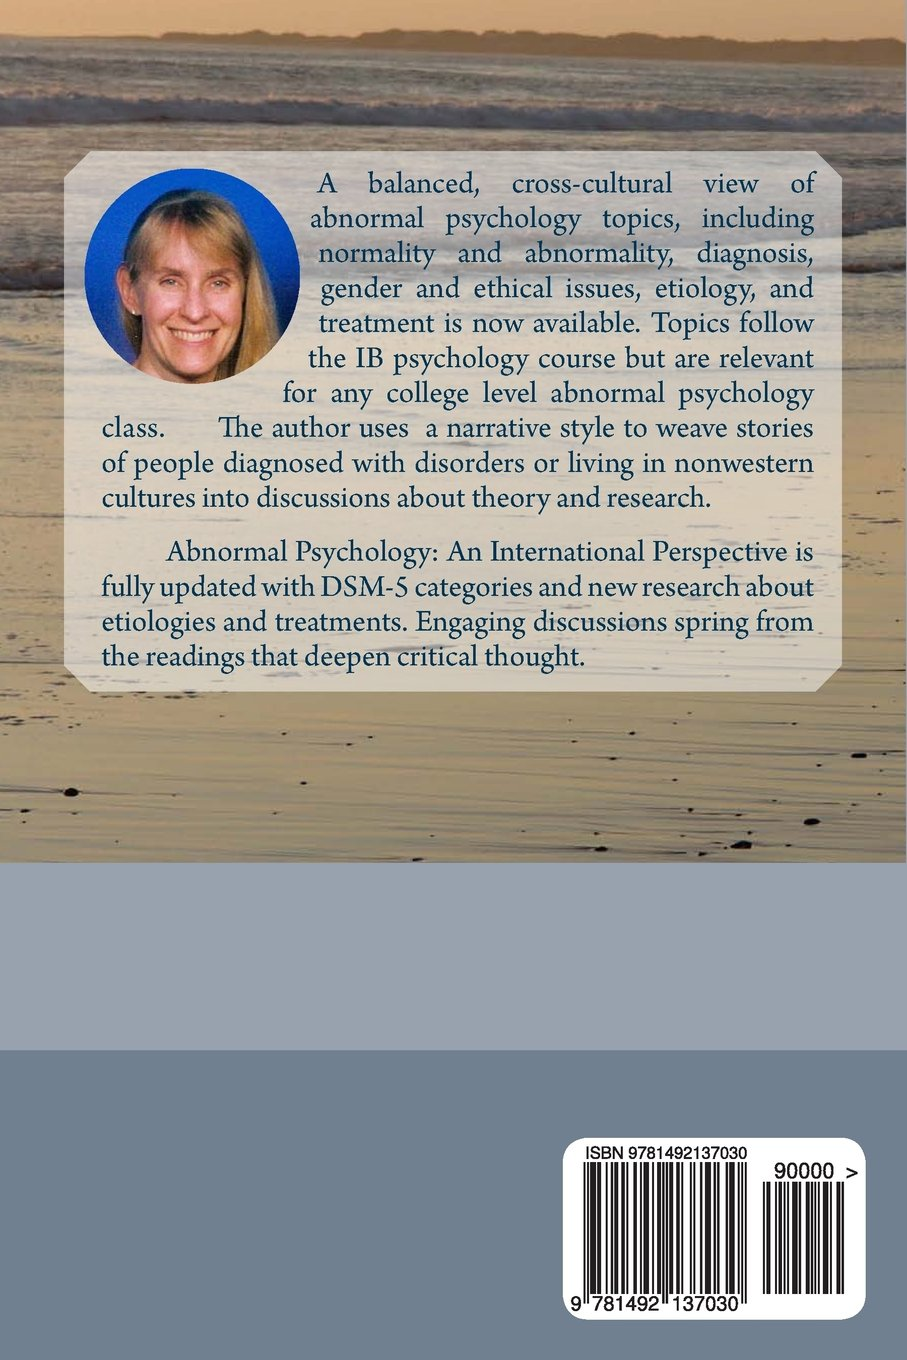 abnormal psychology an international perspective jennie brooks abnormal psychology an international perspective jennie brooks jamison 9781492137030 com books